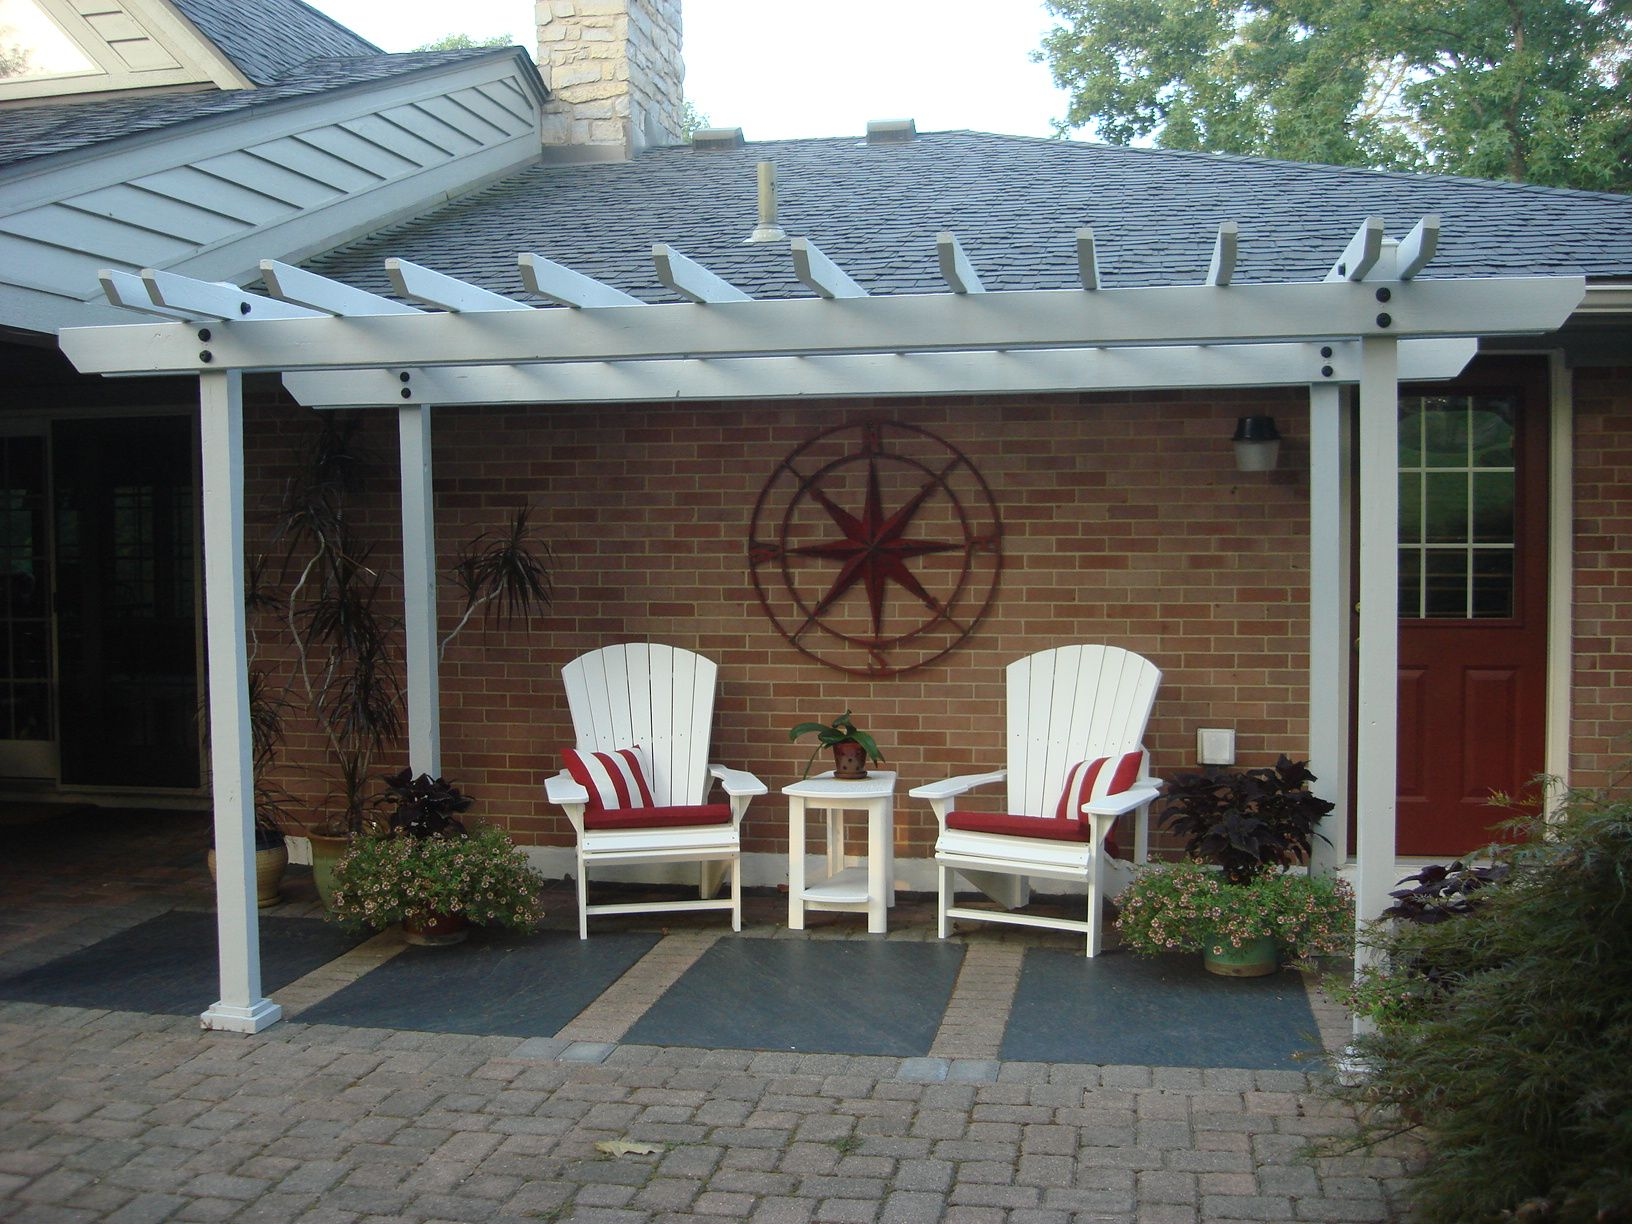 Do You Want To Make Your Outdoor Living Space Like This? Check Out Our  Website   We Have FREE Tutorials, Tips, And Project Plans!